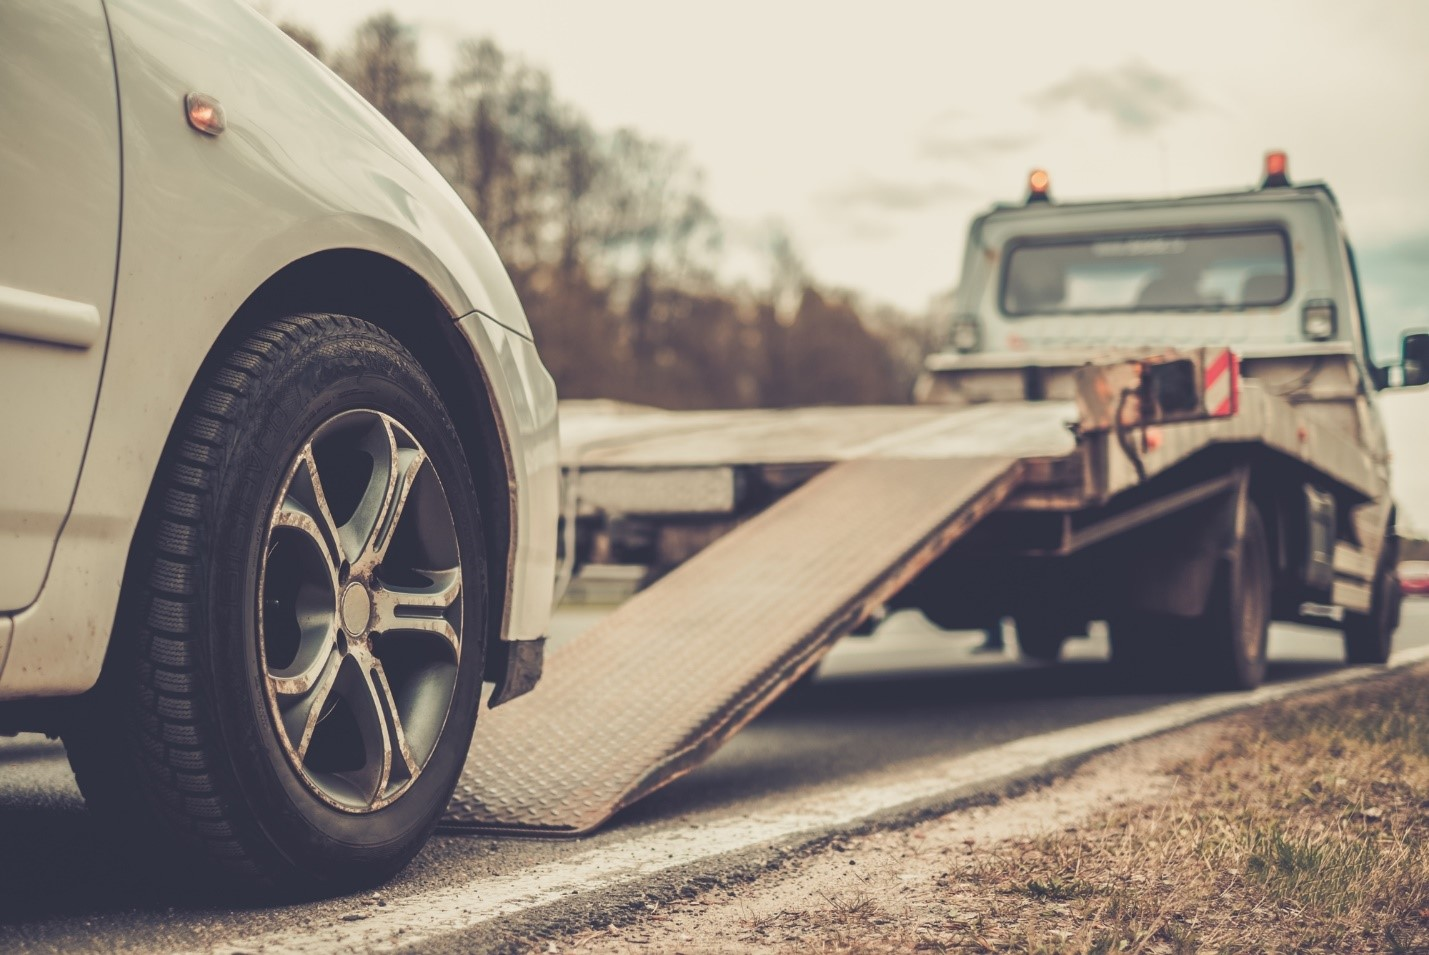 Your car is one of the most important and valuable possessions you own. Don't risk damaging it and adding extra stress and cost to your move by driving it to your new location. Let Piedmont Towing's professional vehicle transport service can save you time and money while ensuring the safe delivery of your vehicle.